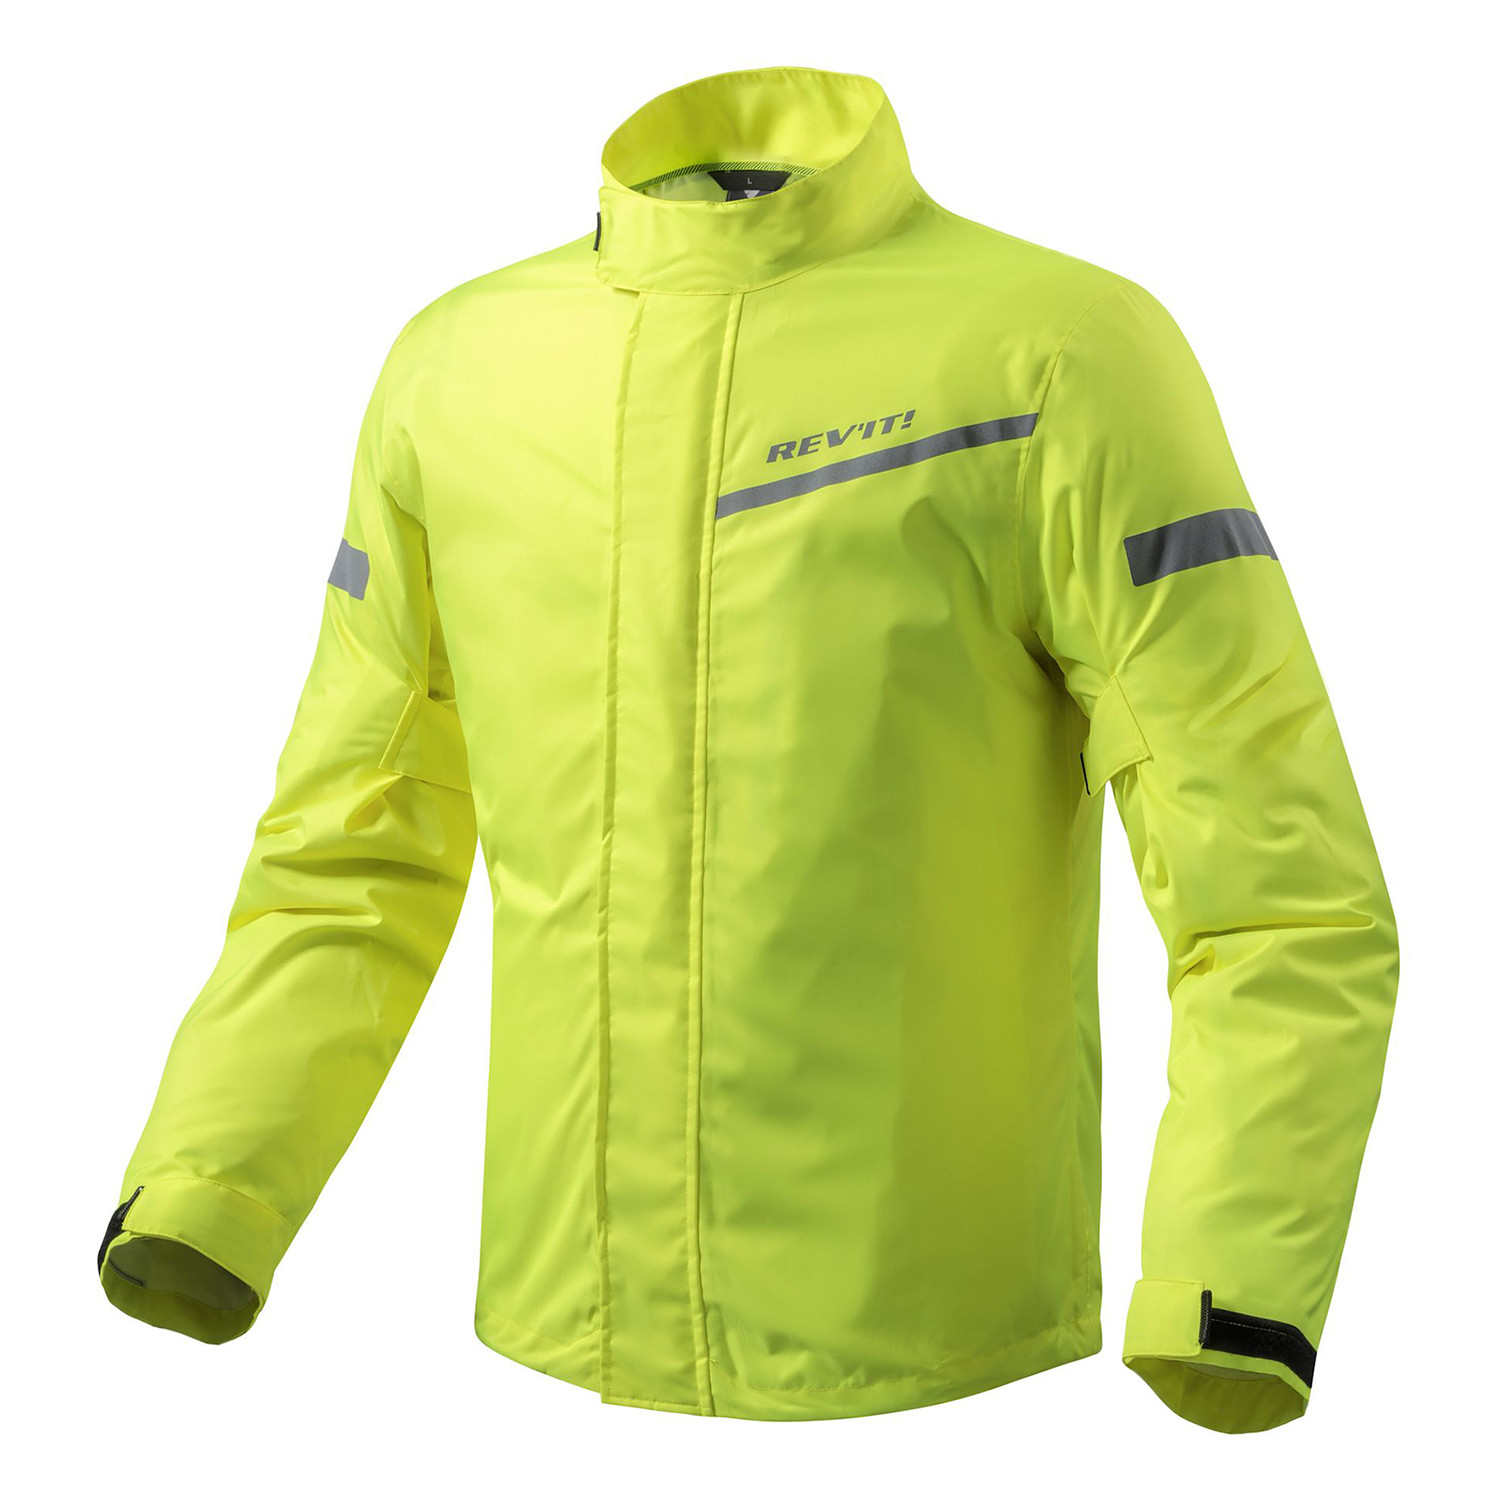 Campera Moto Revit Cyclone 2 Lluvia H20 Impermeable Fluo